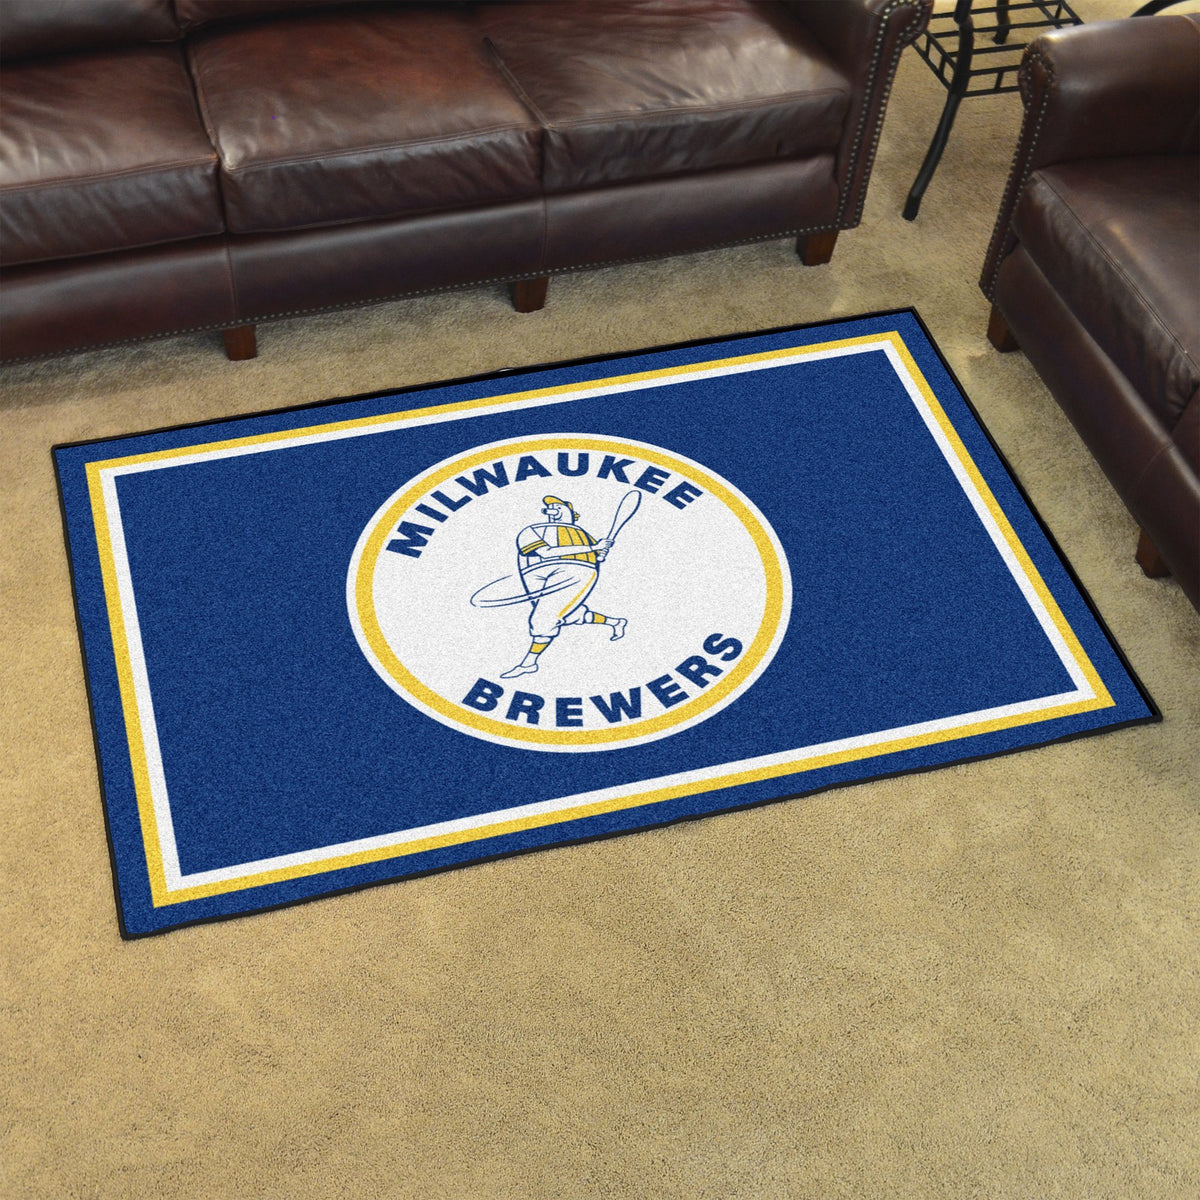 MLB Retro - 4' x 6' Rug MLB Retro Mats, Plush Rugs, 4x6 Rug, MLB, Home Fan Mats Milwaukee Brewers